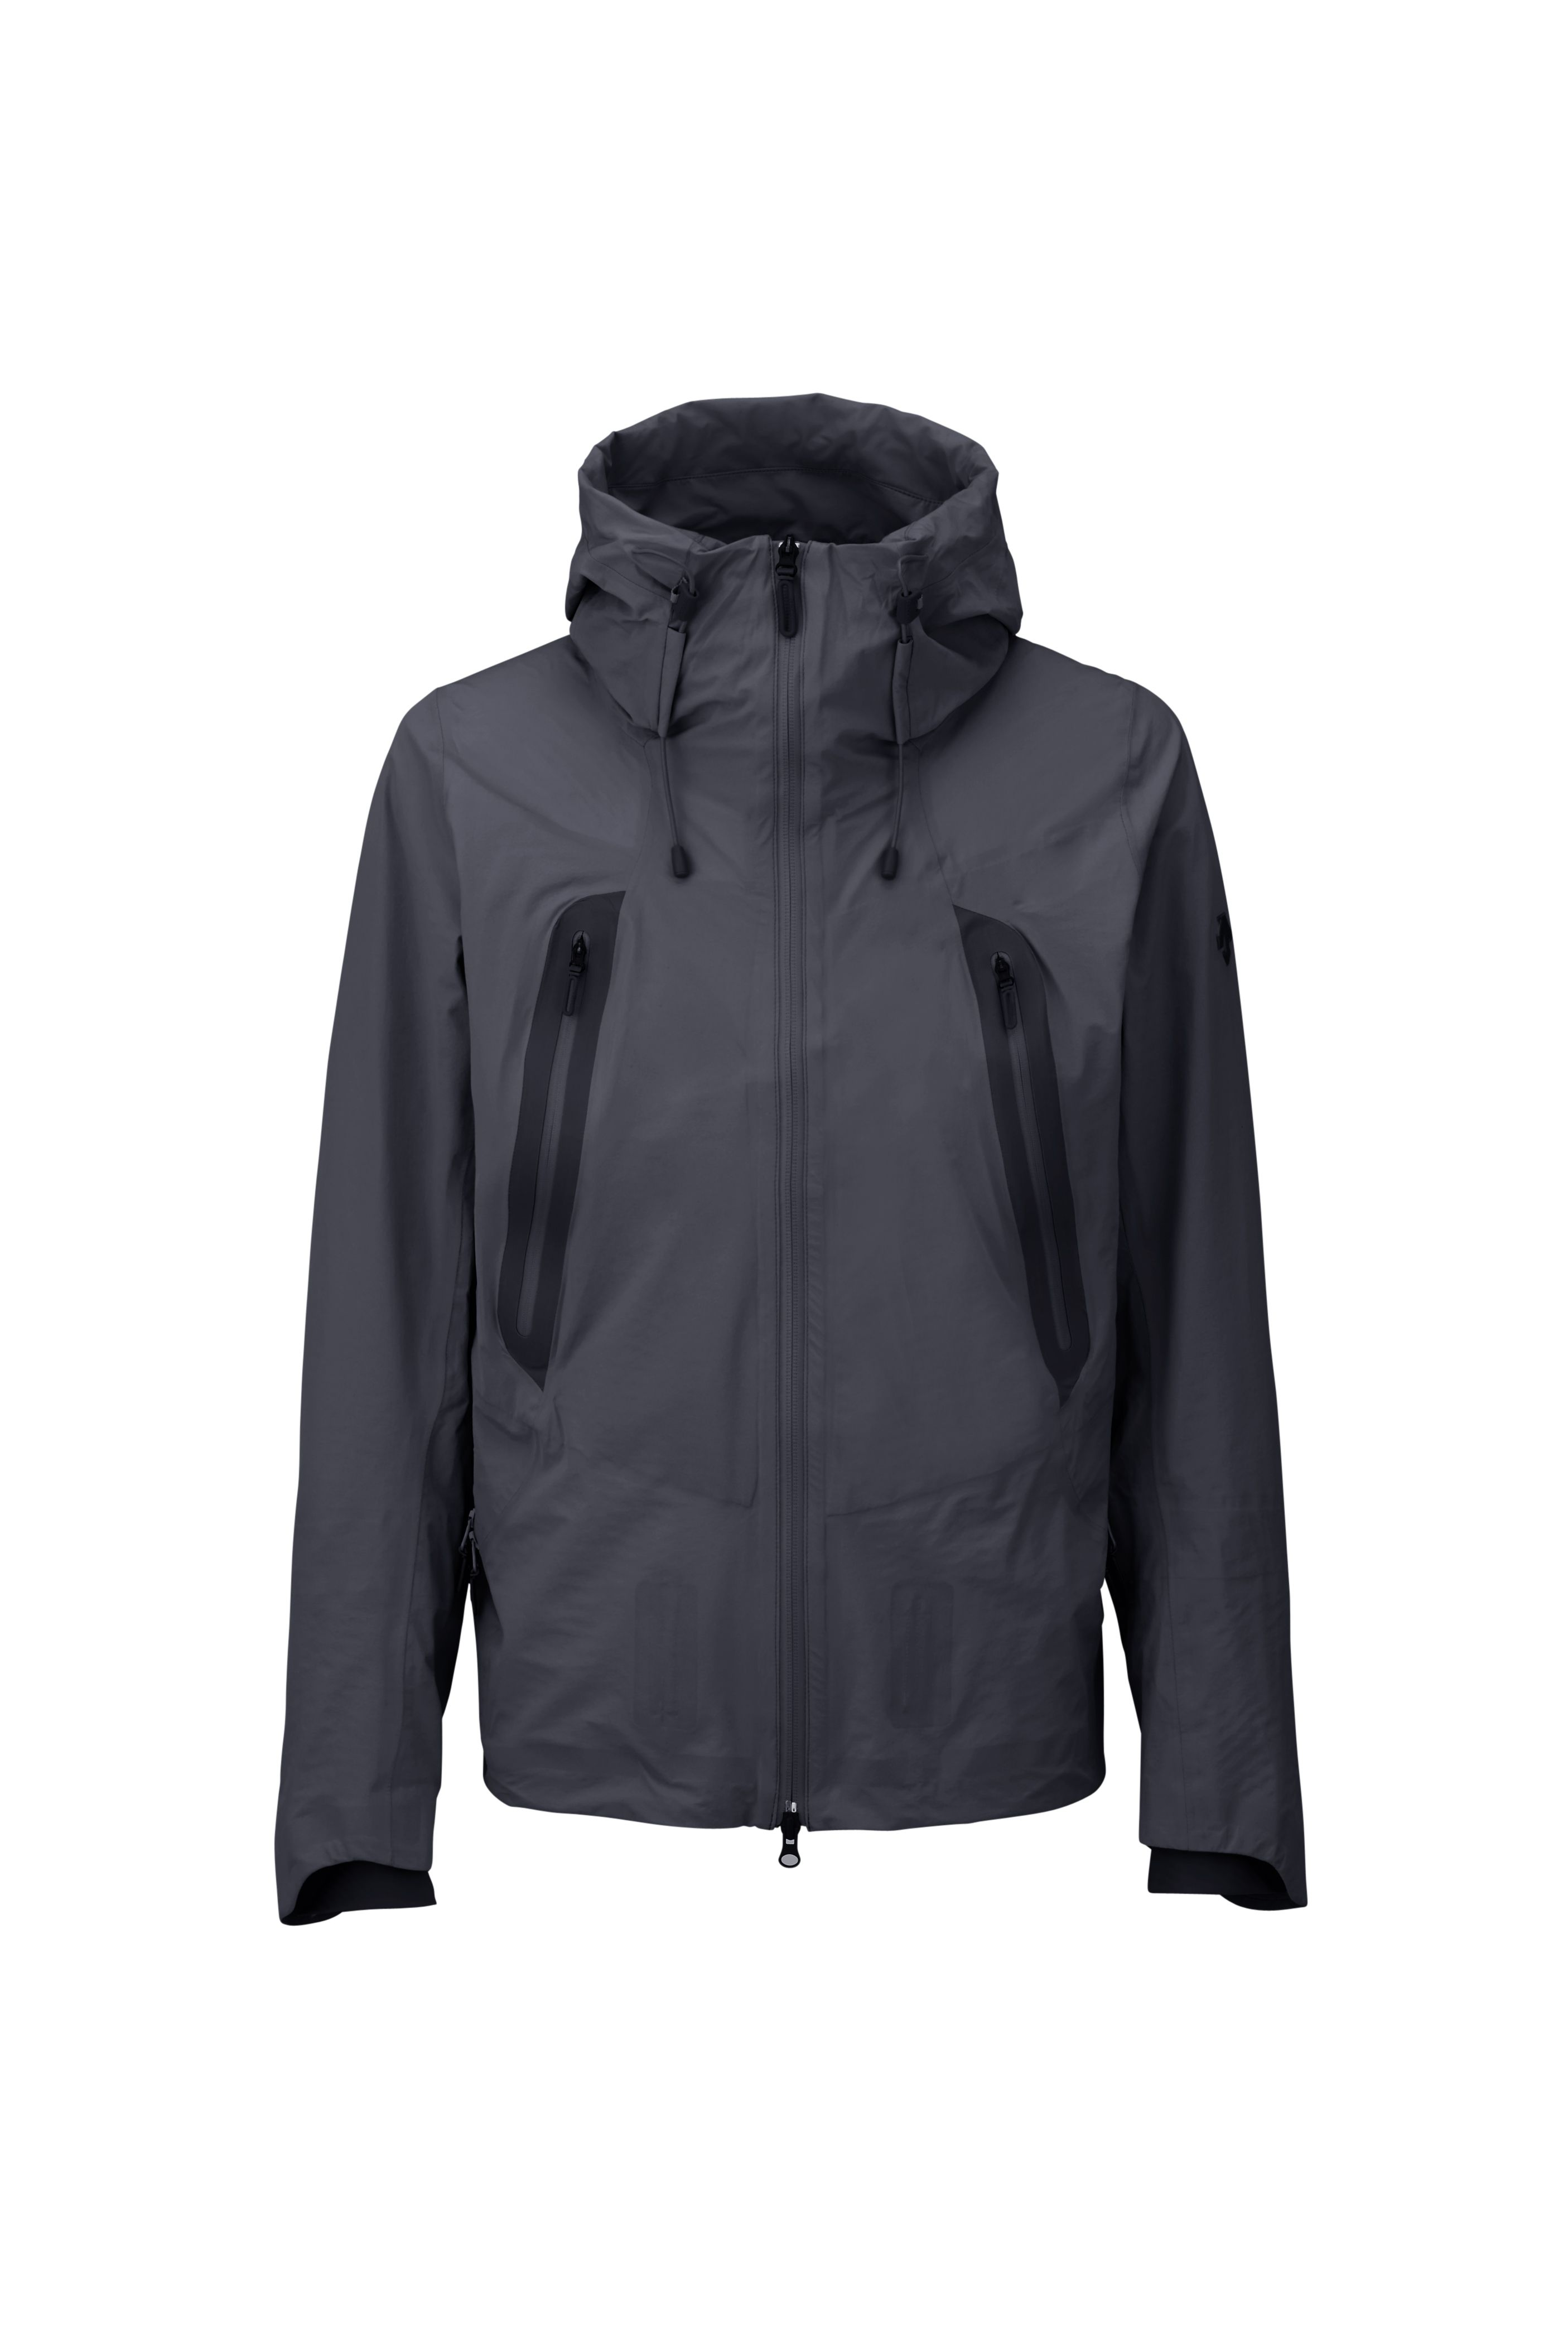 540f87a378c9 DIA3603U INNER SURFACE TECHNOLOGY PARAHOOD JACKET 伸縮性に優れ、軽量 ...